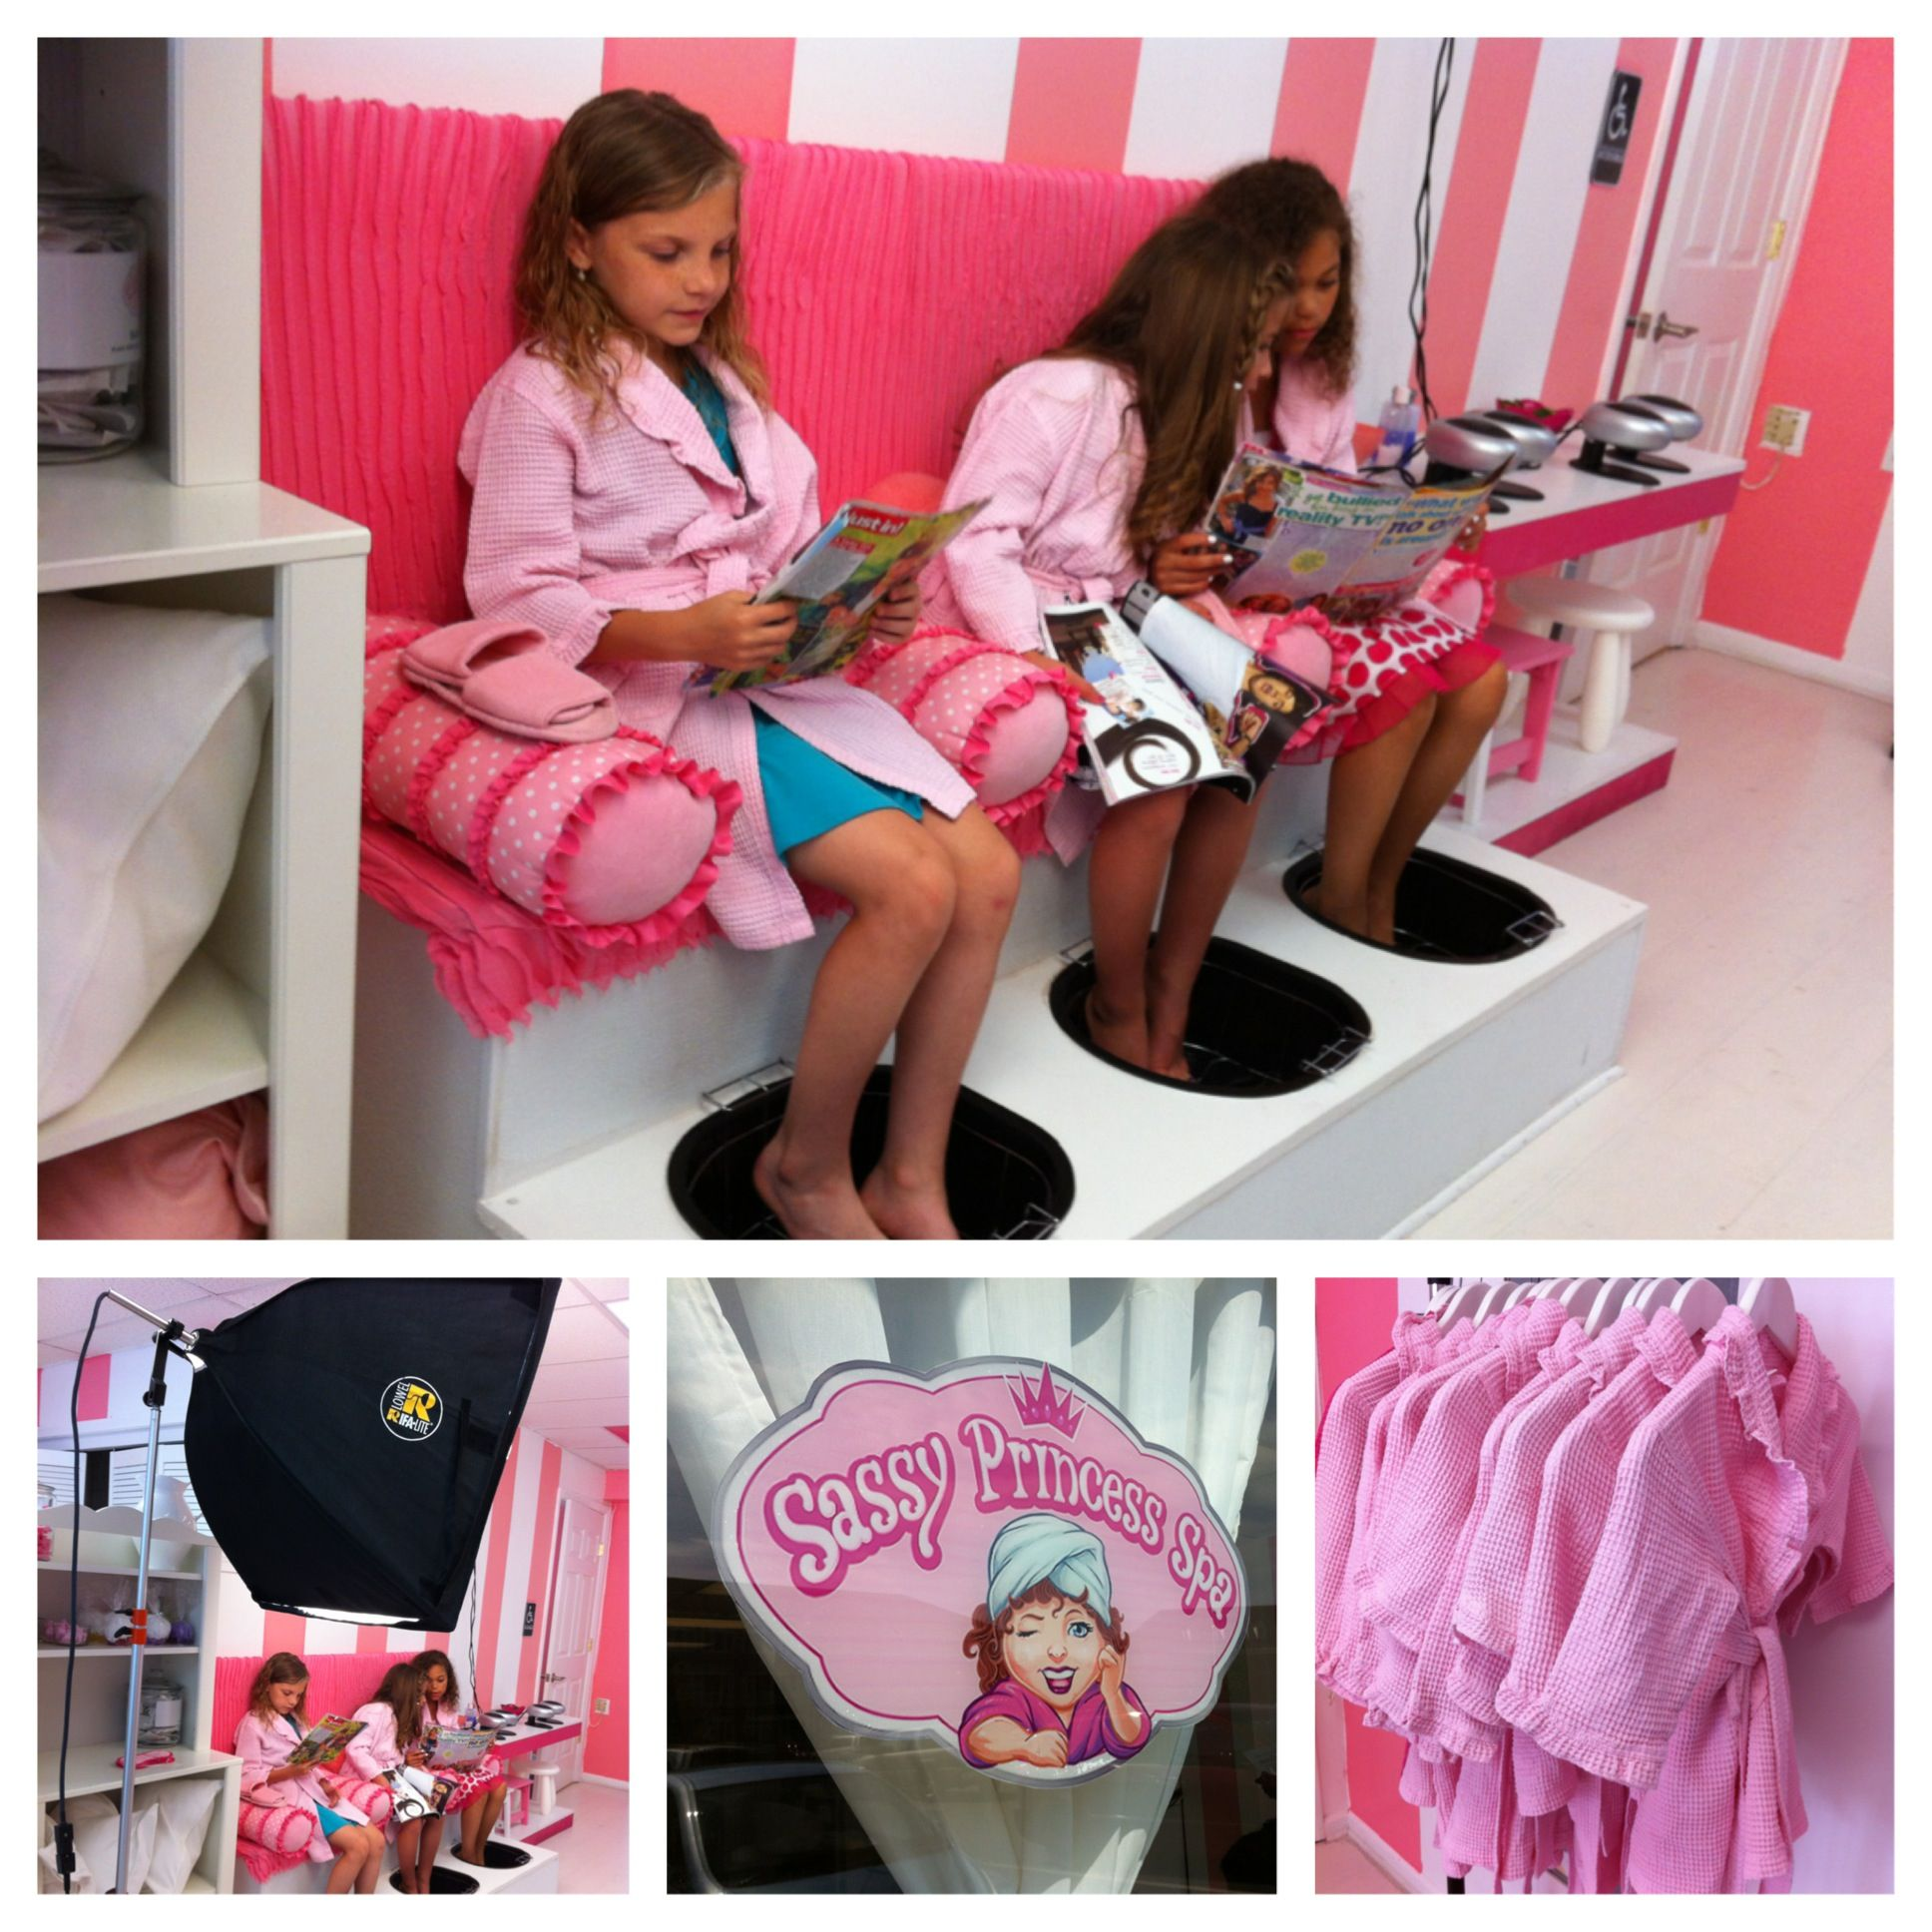 Fashion Nail Salon And Beauty Spa Games For Girls: Sassy Princess Spa For Girls Ages 3-13!